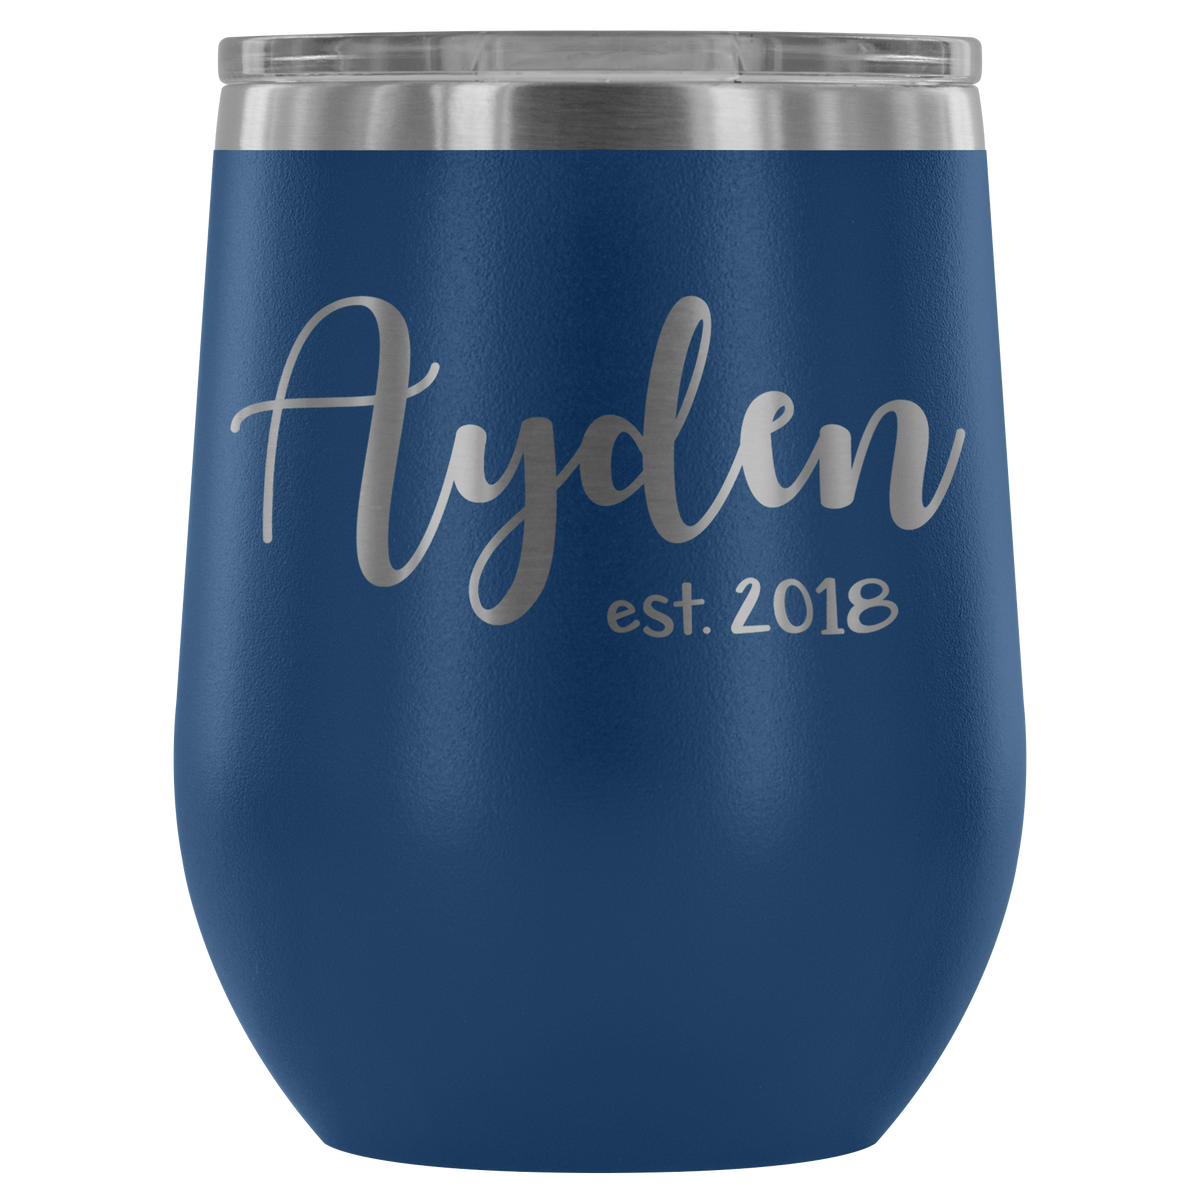 Custom Name Tumbler - Ayden est. 2018